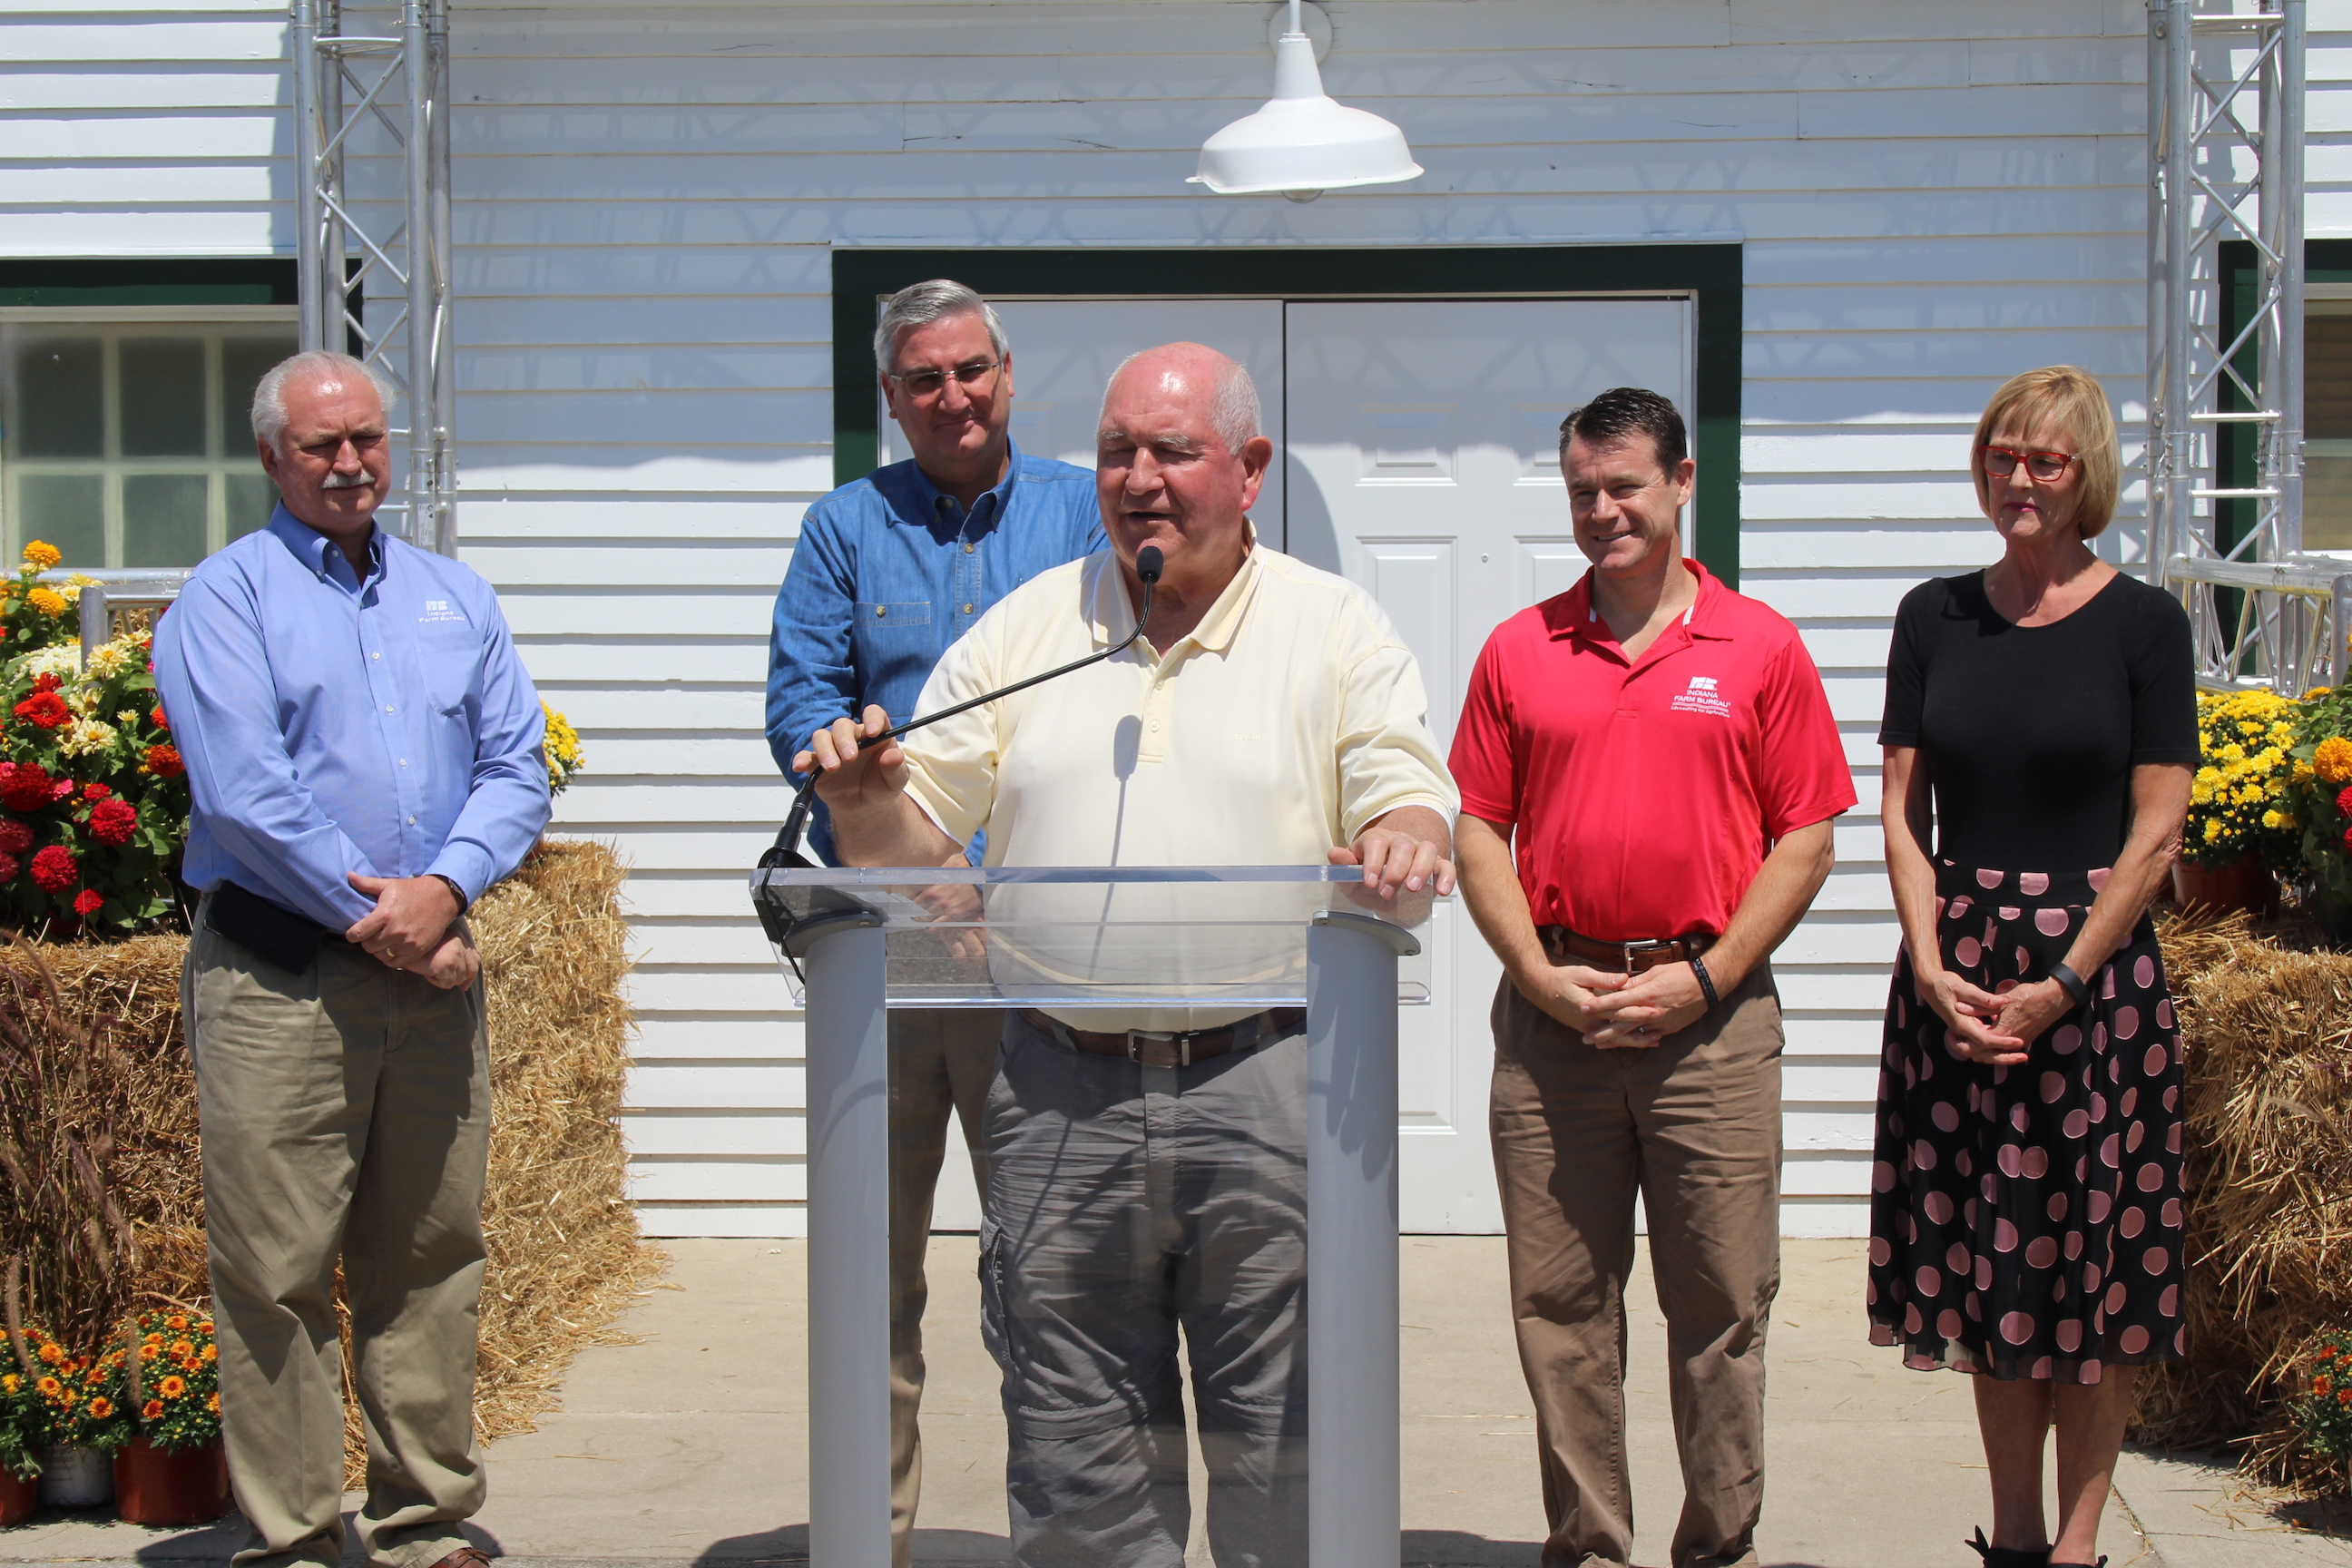 U.S. Secretary of Agriculture Sonny Perdue speaks alongside Indiana Farm Bureau President Randy Kron, Gov. Eric Holcomb, Sen. Todd Young (R-Ind.) and Lt. Gov. Suzanne Crouch at the Indiana State Fair.